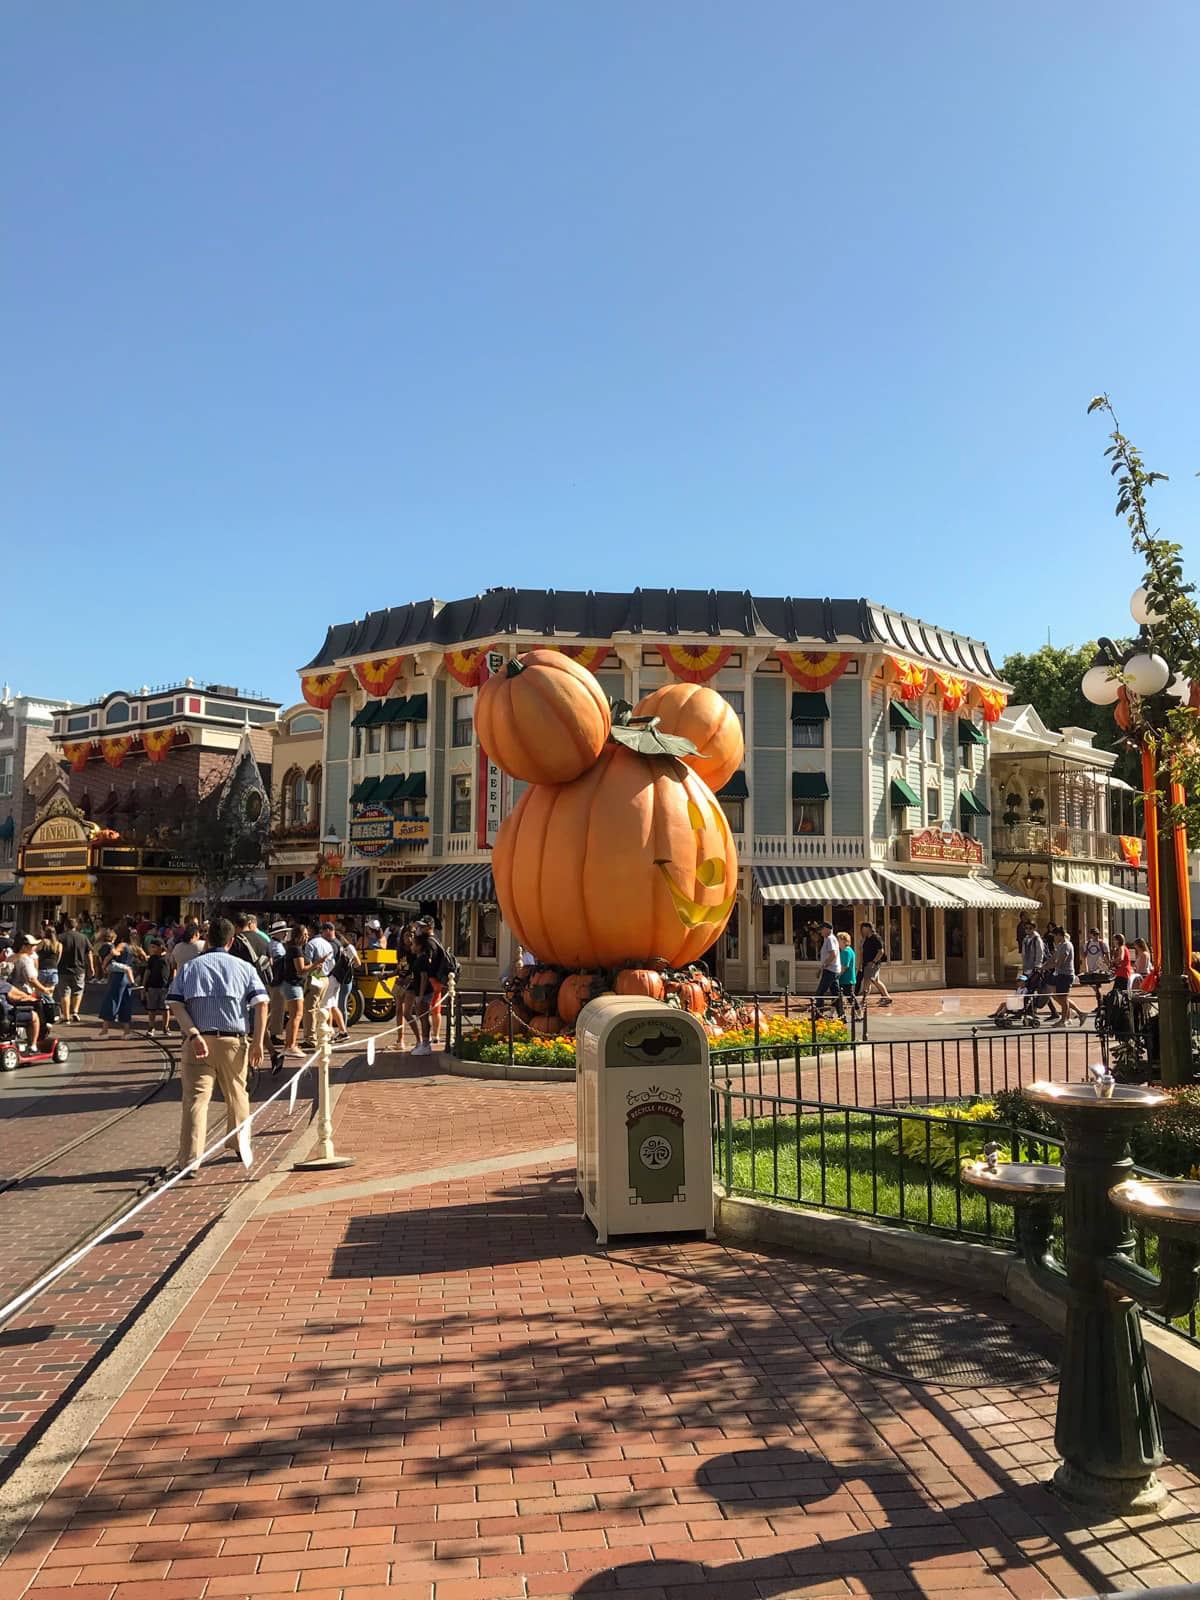 A view inside a Disneyland theme park, where a large statue of Mickey's head styled like a carved pumpkin is in the centre of the frame